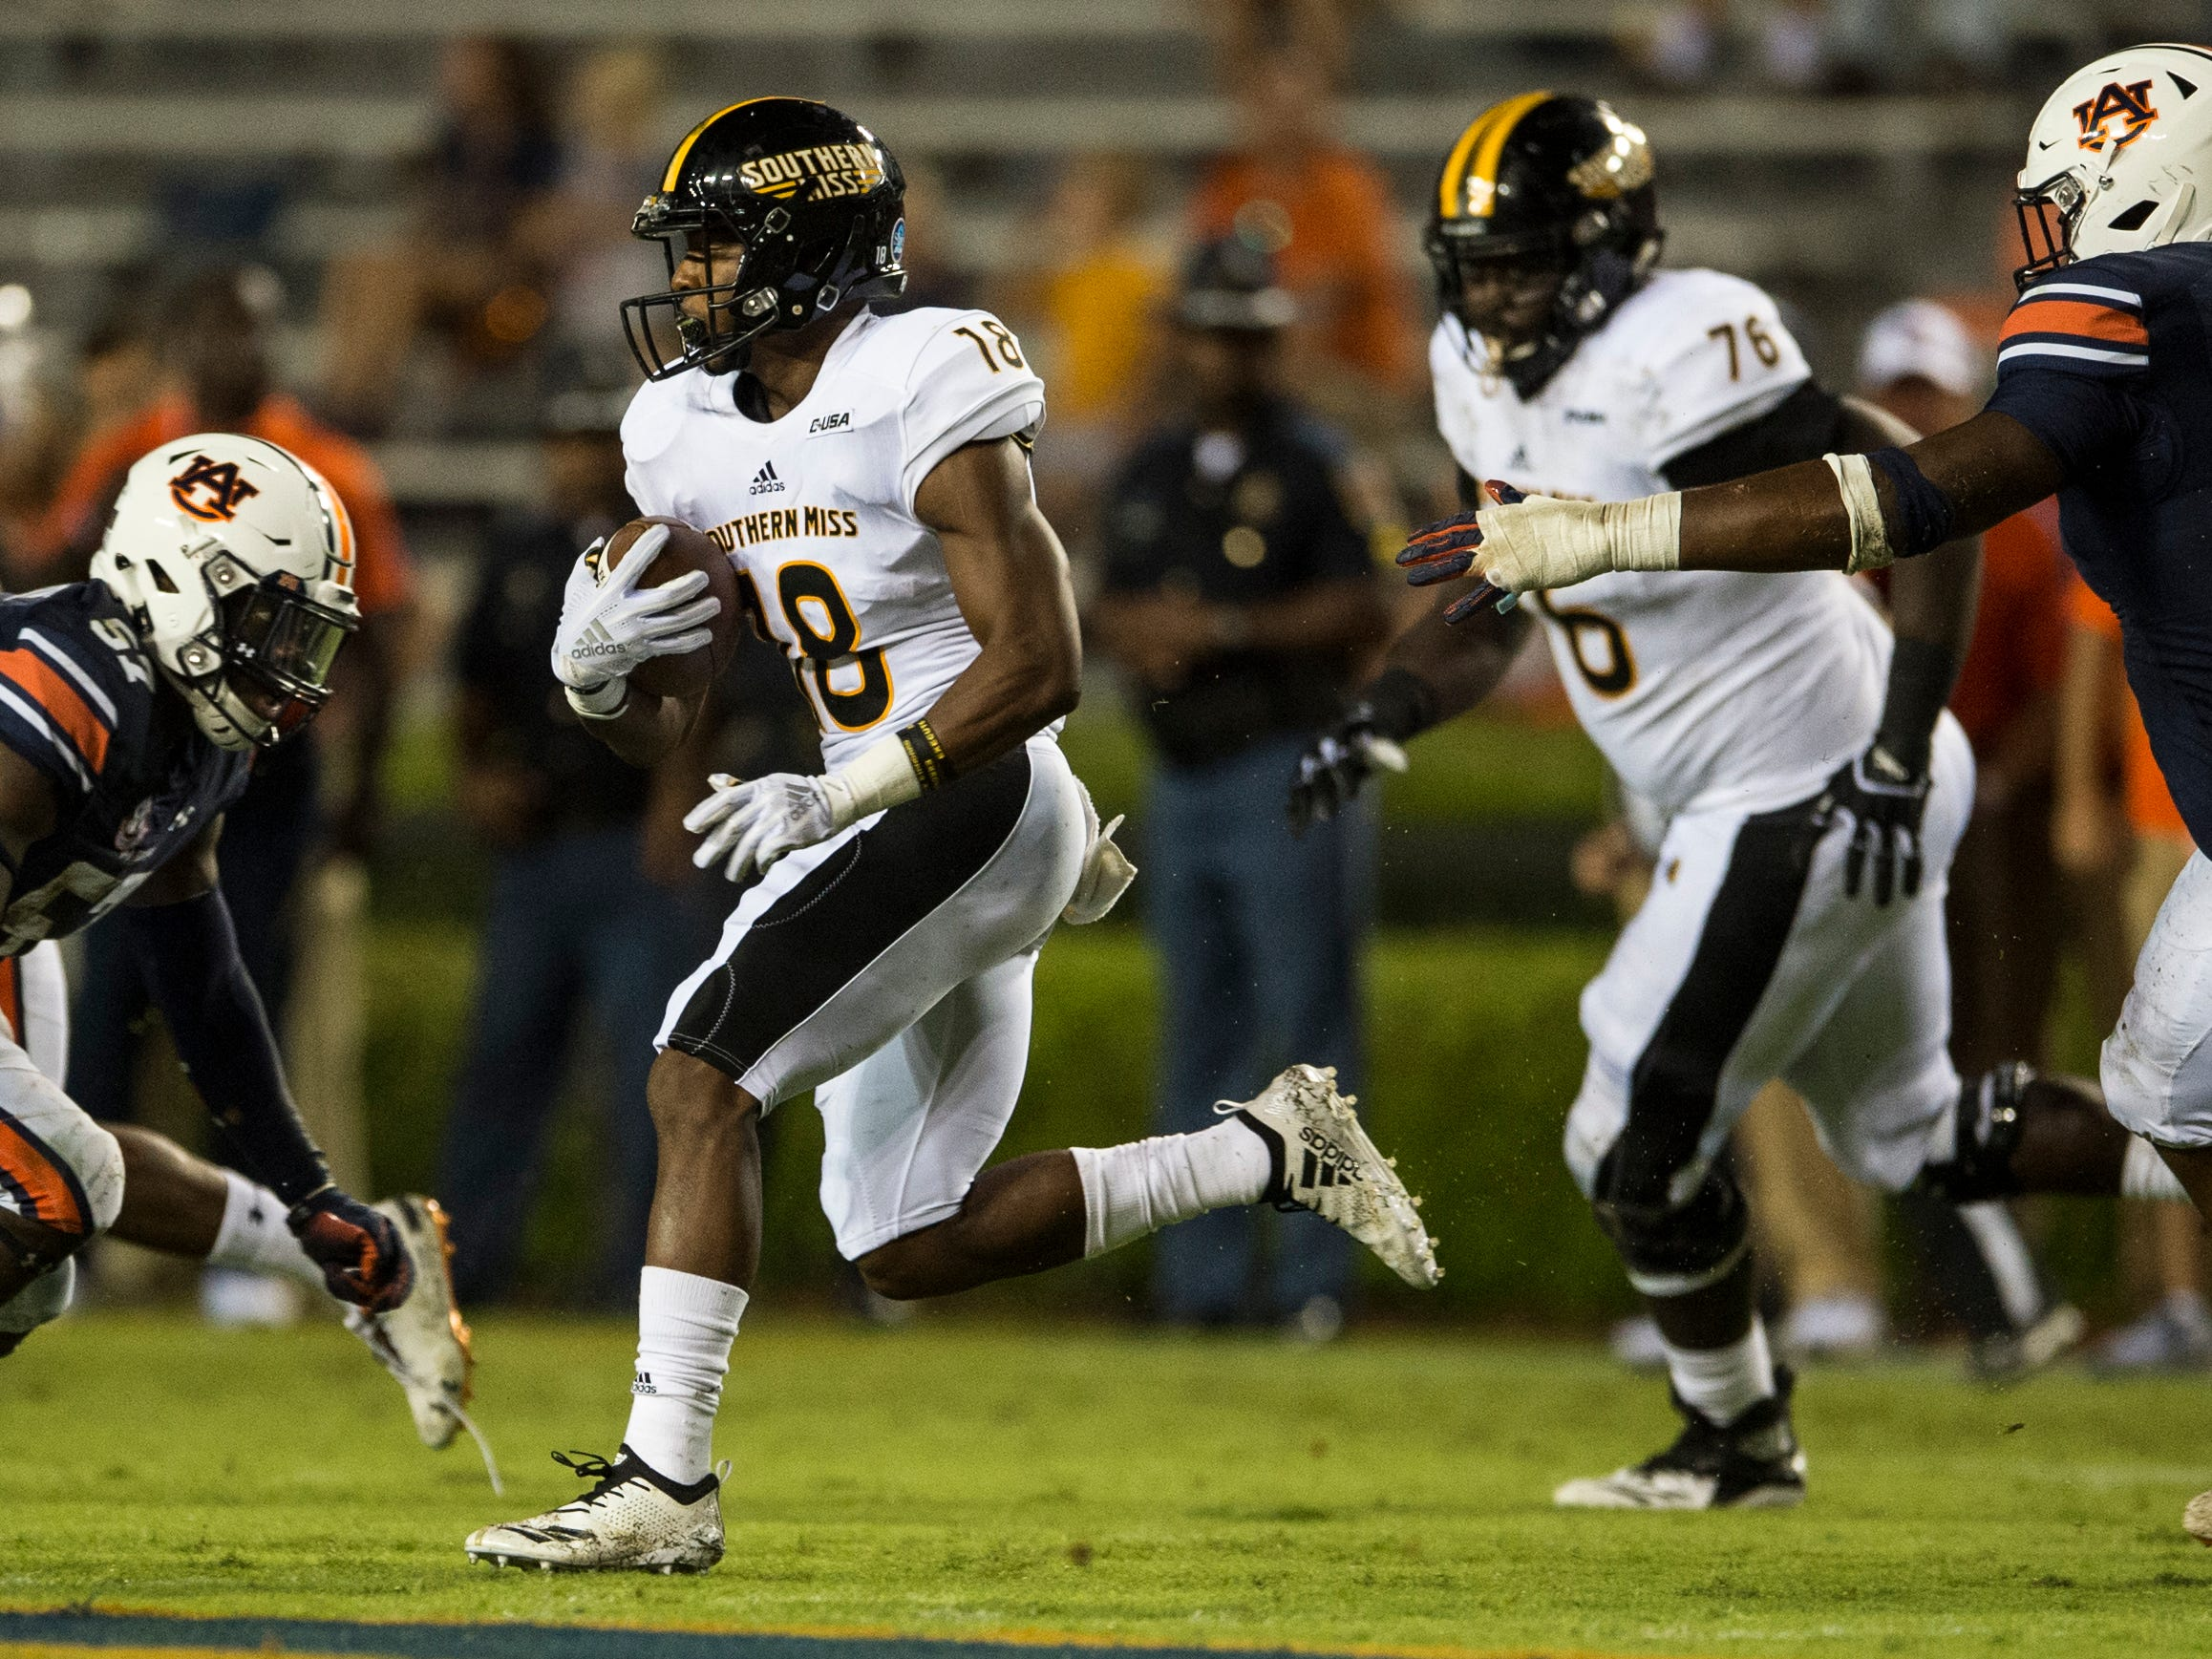 Southern Miss' Jason Goldstein (18) runs the ball down the field against  Auburn at Jordan-Hare Stadium in Auburn, Ala., on Saturday, Sept. 29, 2018. Auburn defeated  Southern Miss 24-13.